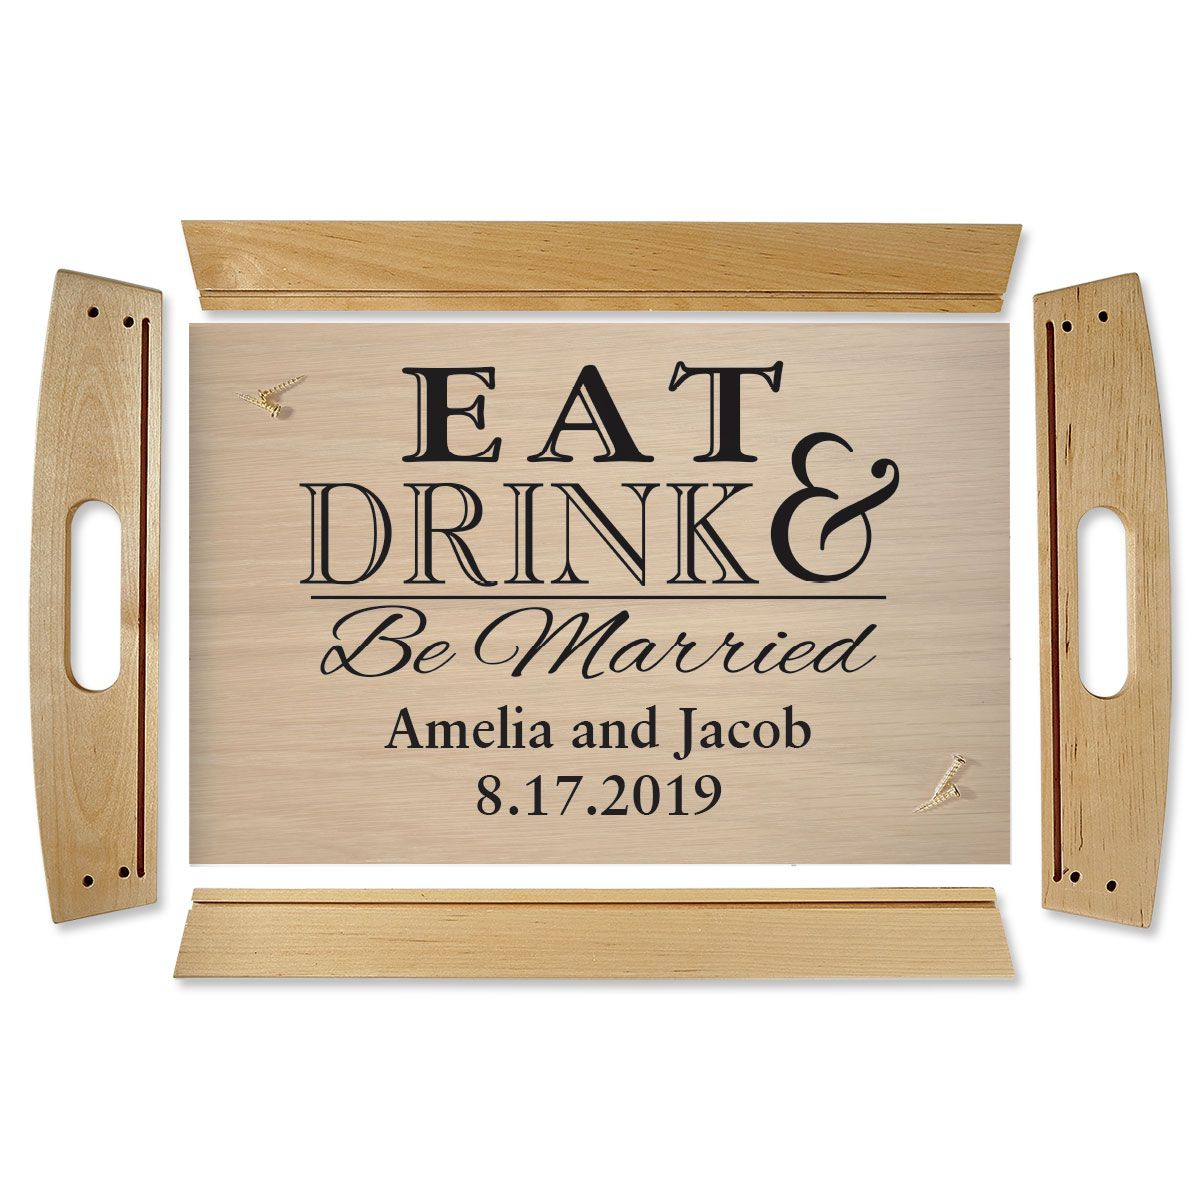 Eat Drink & Be Married Natural Wood Personalized Serving Tray